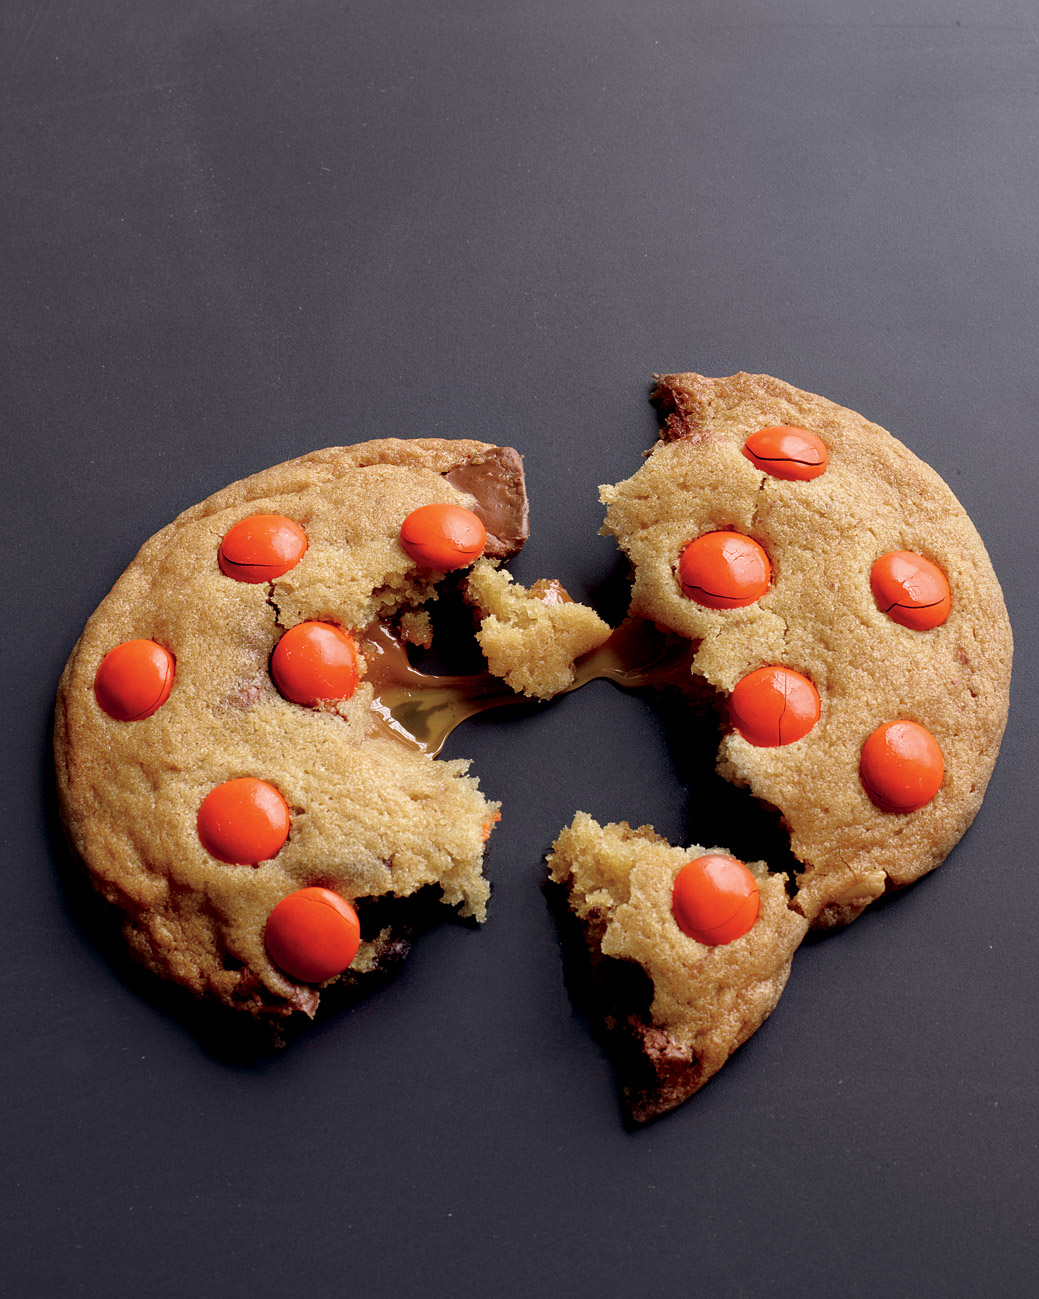 desserts-chewy-caramel-cookies-med107508.jpg